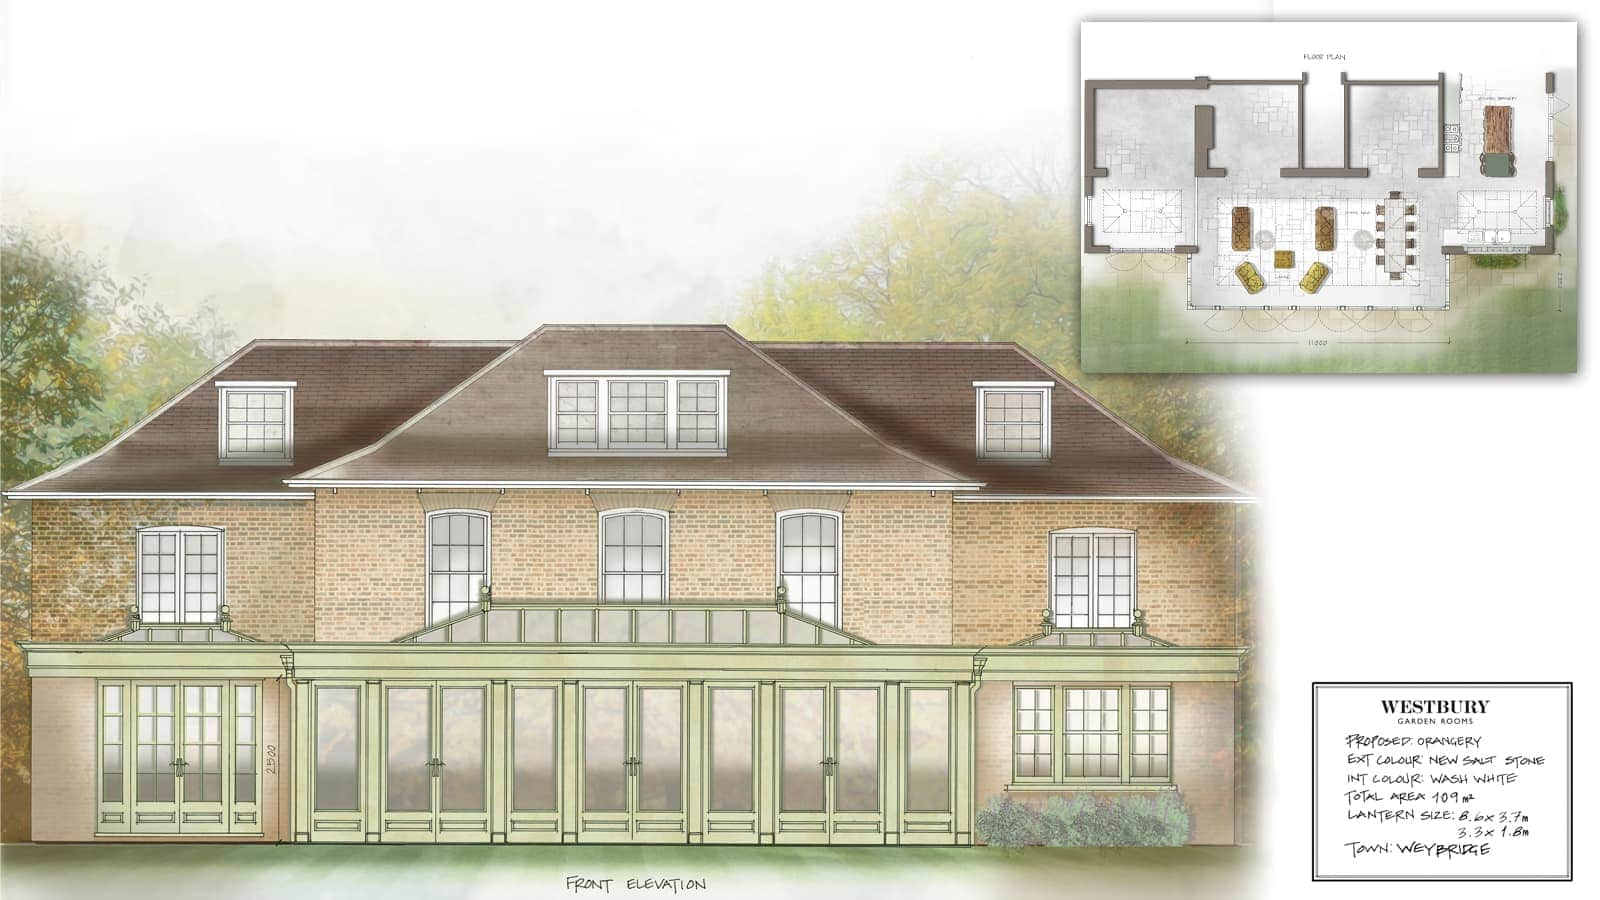 Westbury - kitchen extension design drawing, Weybridge